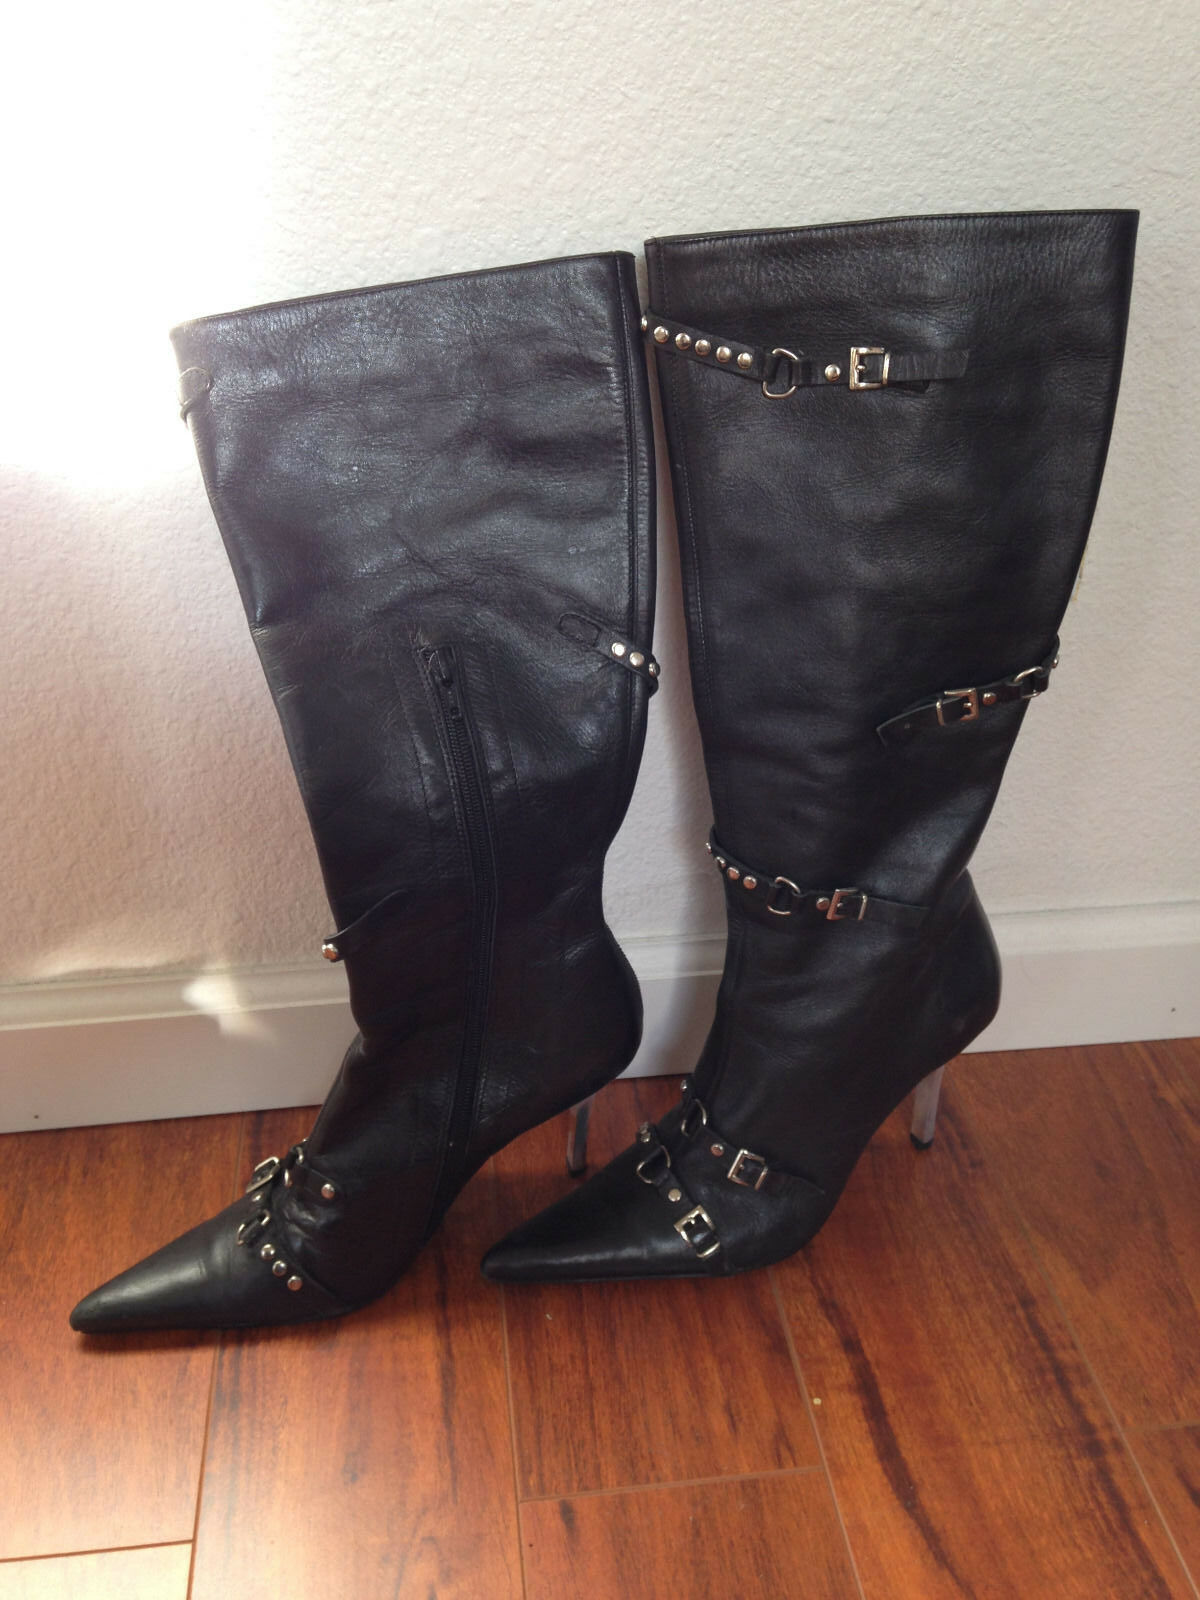 Women boots, Steve Madden boot, High hills boot, high boot, leather boot, brand